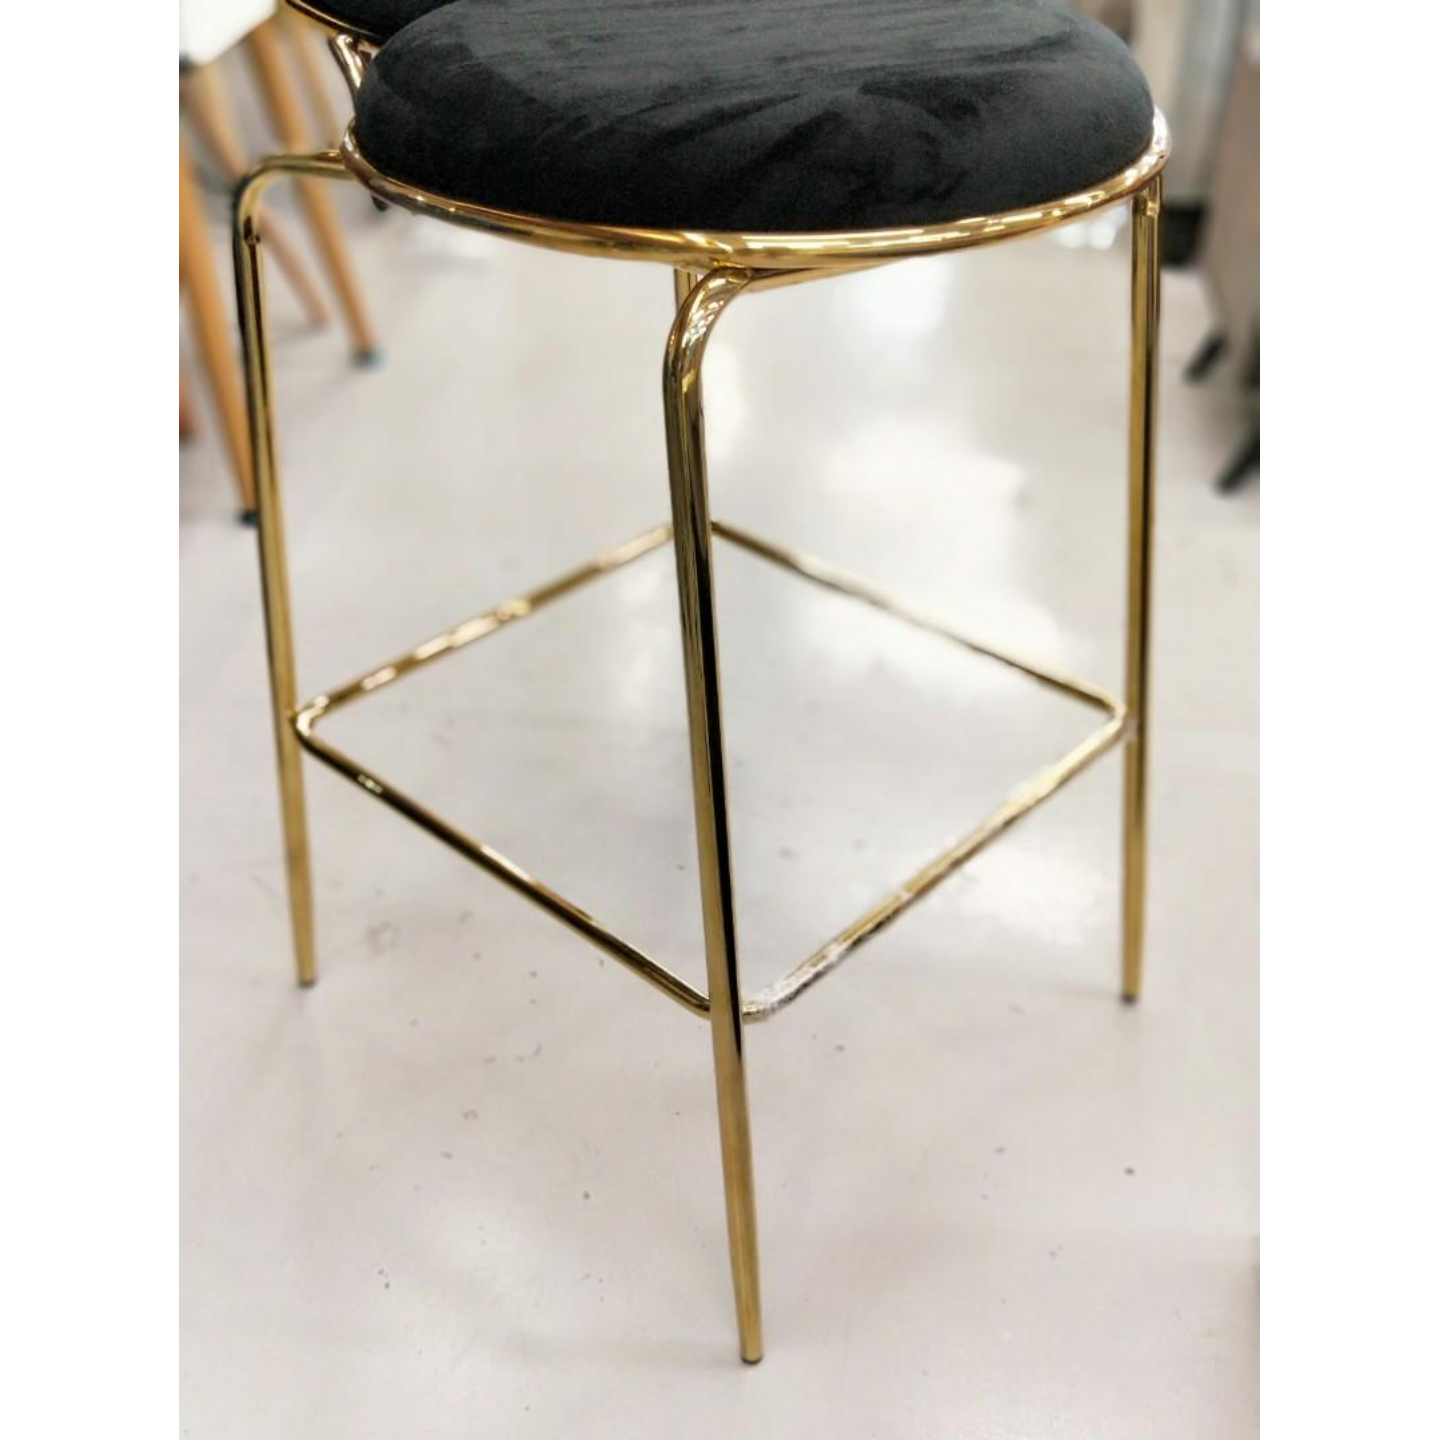 MARINDA High Bar Chair in VELVET BLACK with Gold Frame